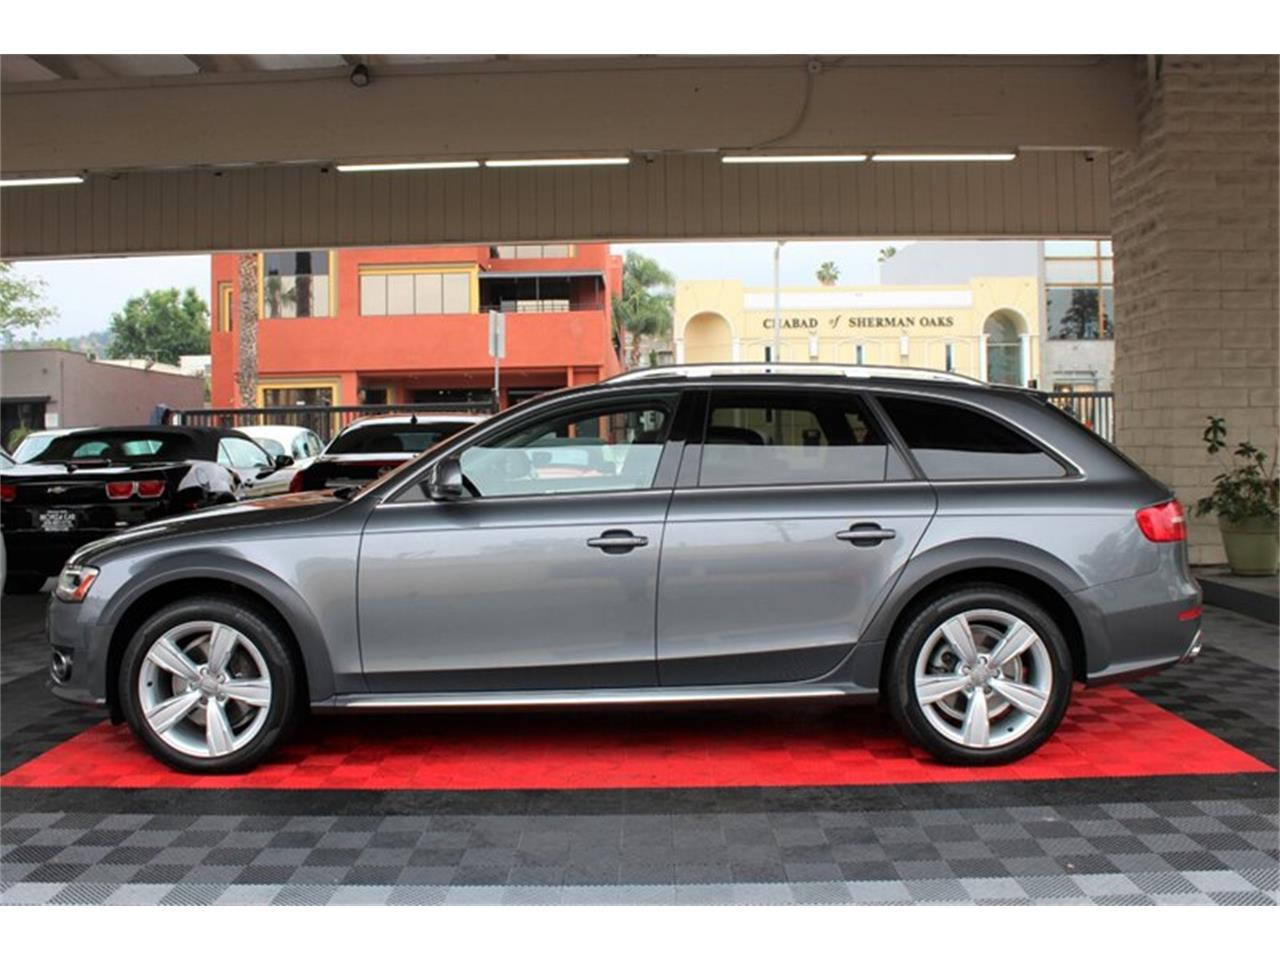 2015 Audi Allroad for sale in Sherman Oaks, CA – photo 8